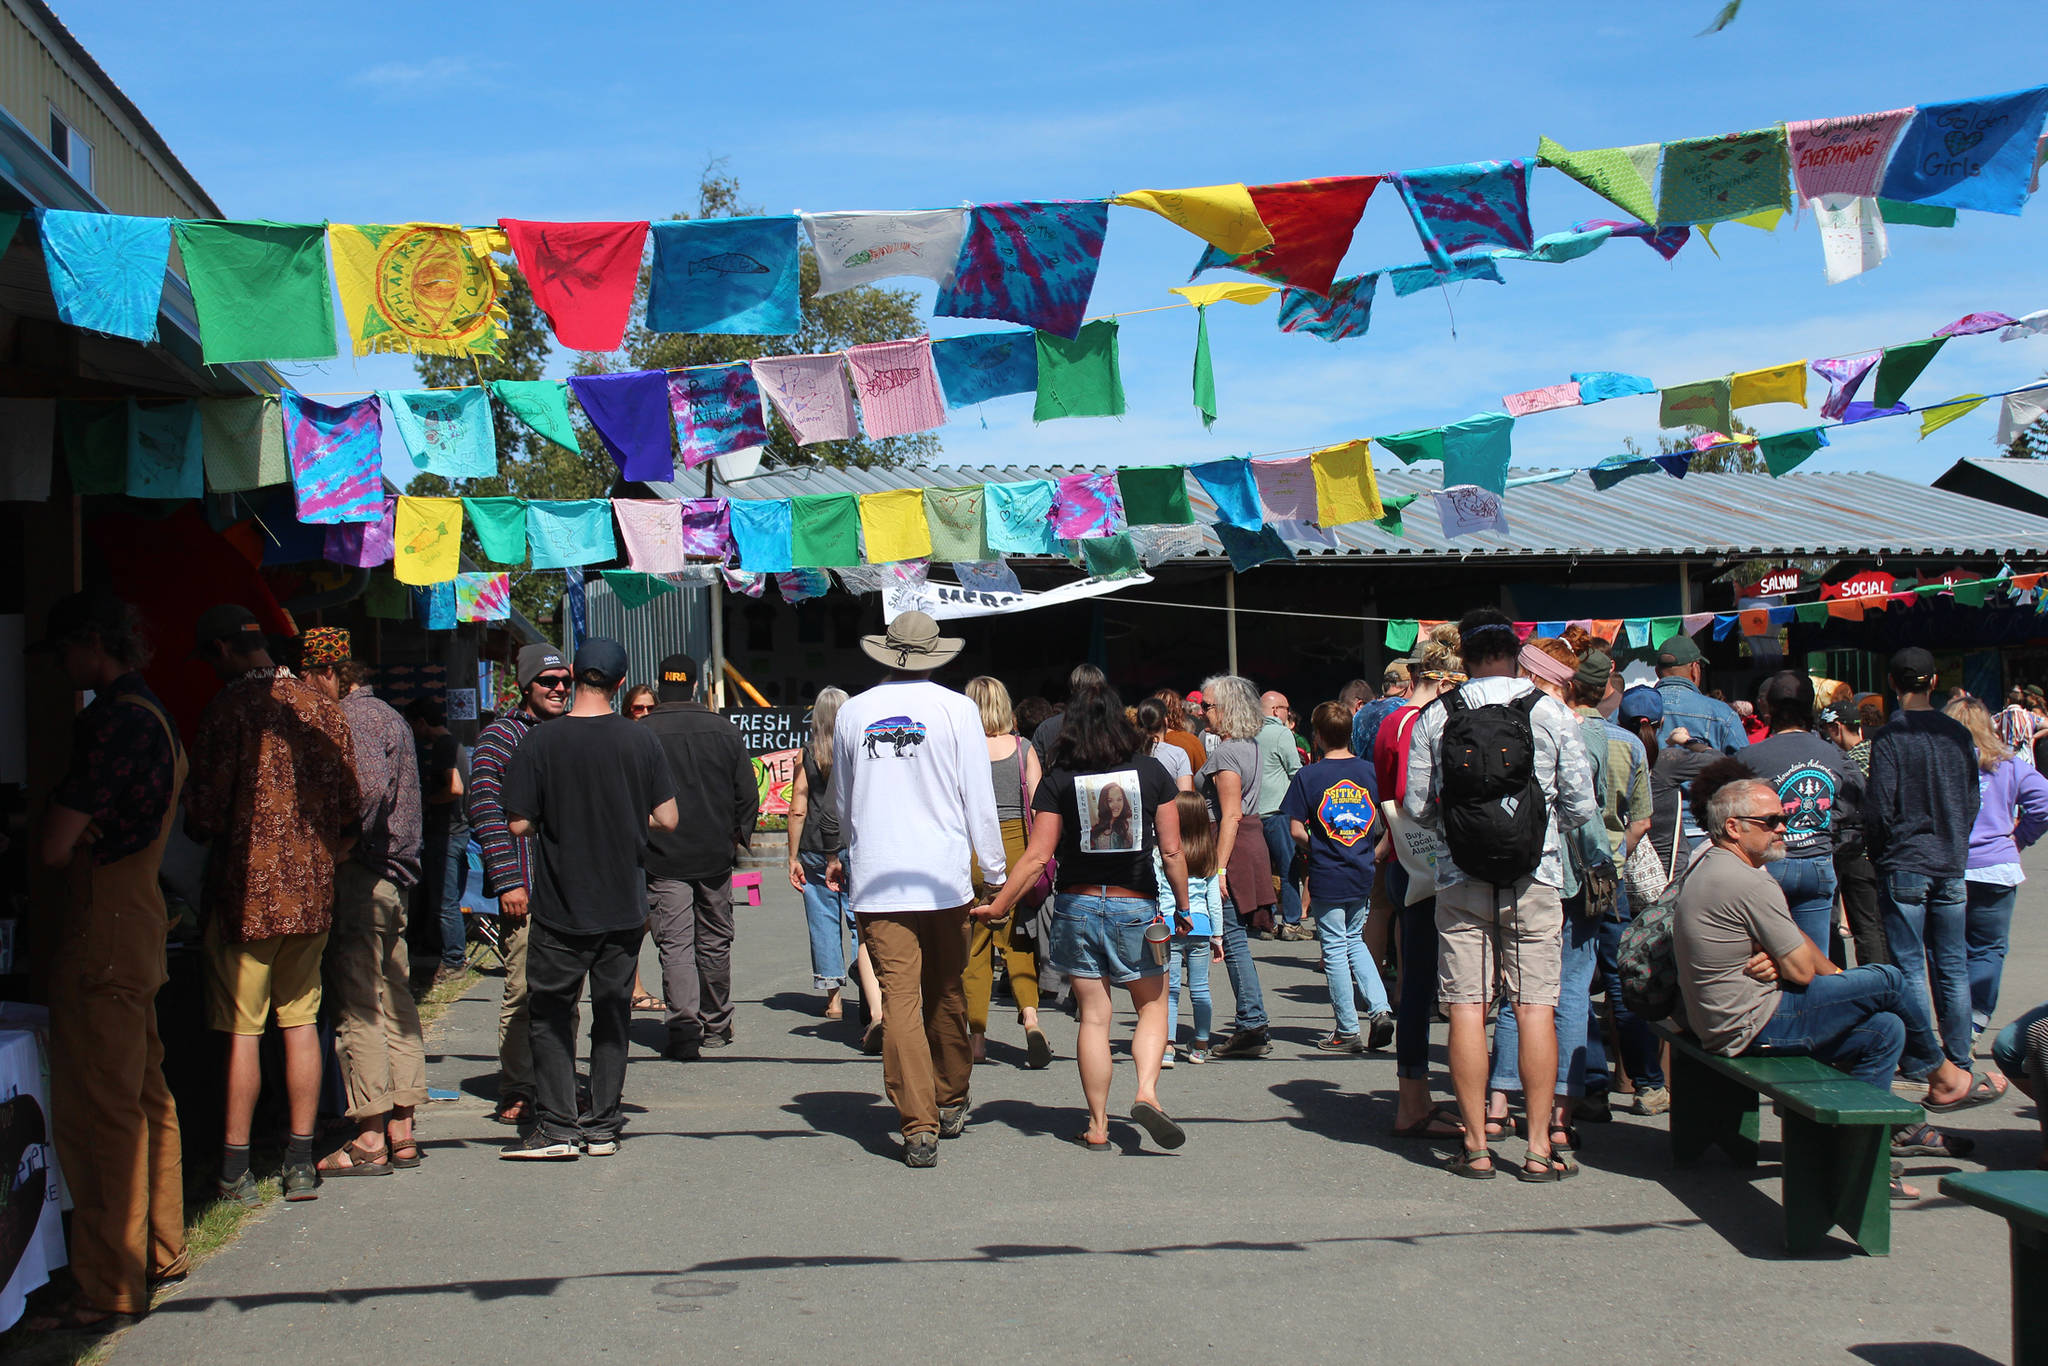 Festival goers walk through the Salmon Causeway — the collection of education and advocacy booths — on Friday, Aug. 2, 2019 at Salmonfest in Ninilchik, Alaska. (Photo by Megan Pacer/Homer News)